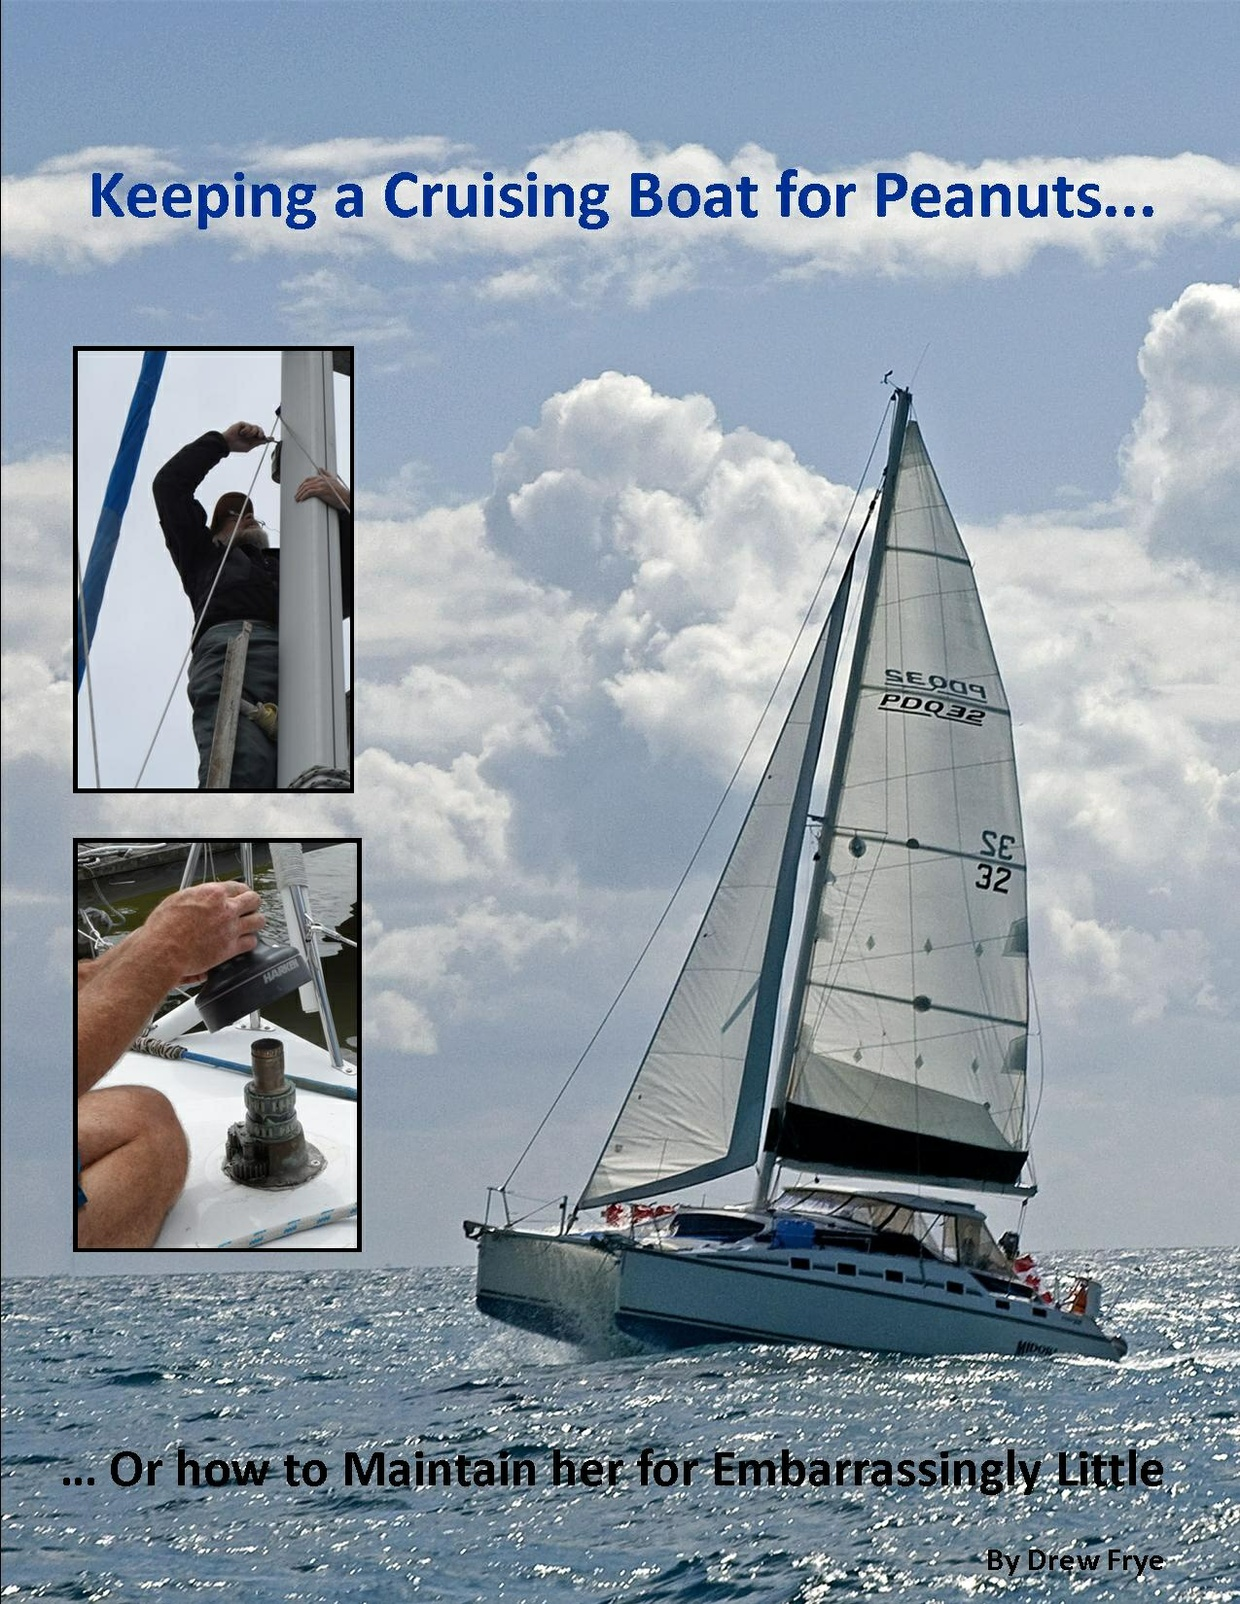 Keeping a Cruising Boat on Peanuts